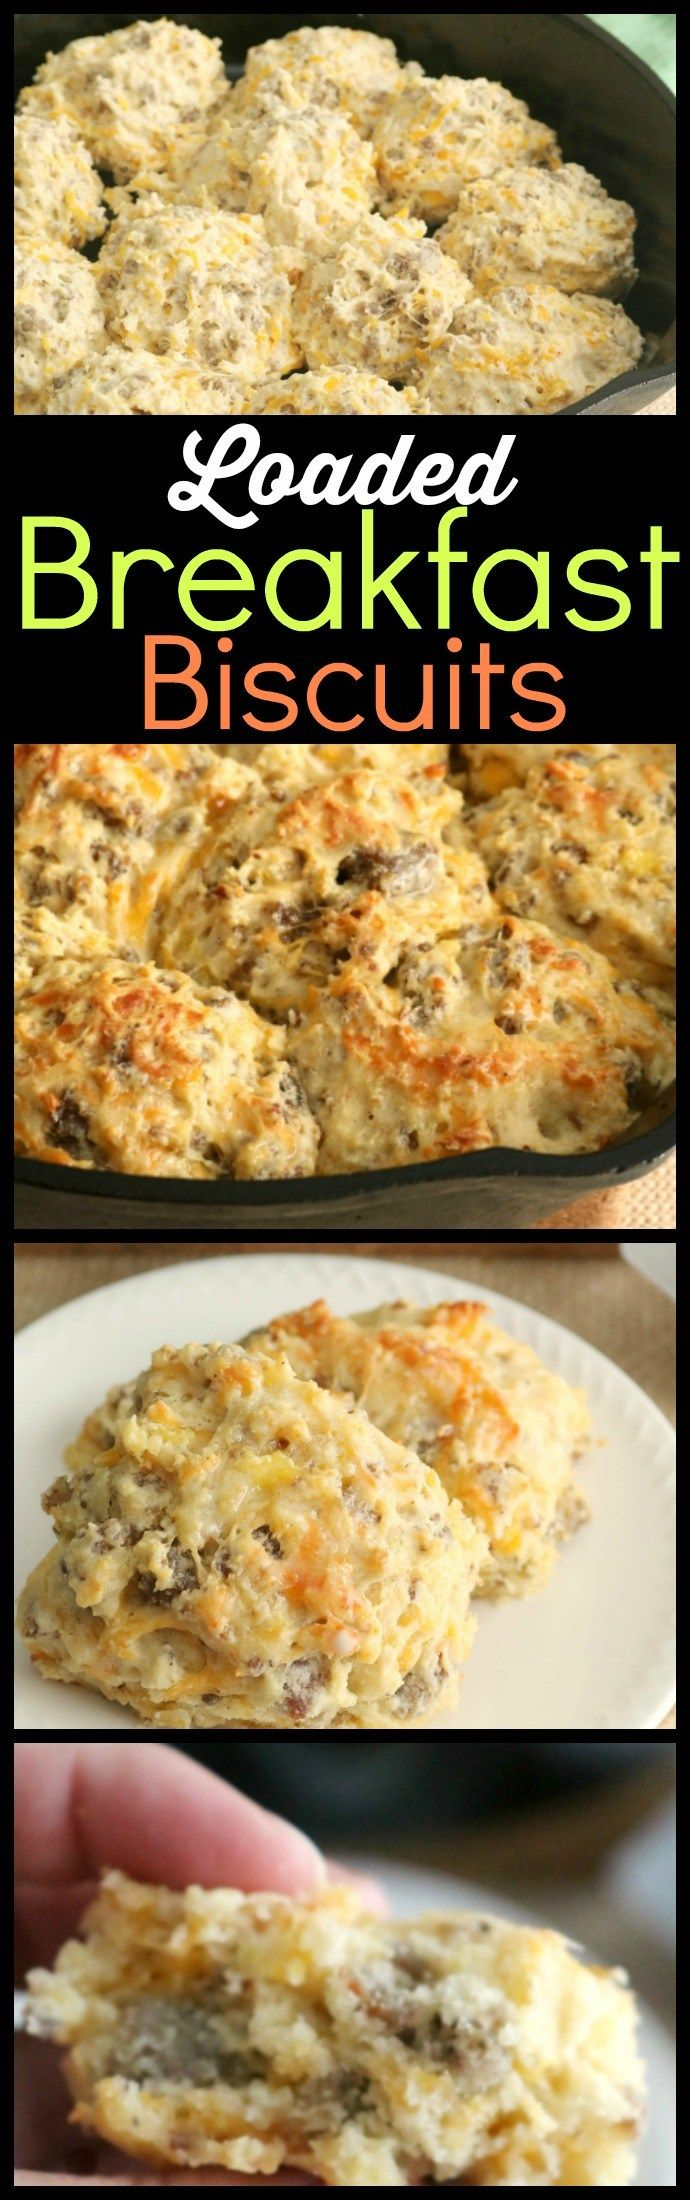 These Loaded Breakfast Biscuits are a fast family favorite because they are easy to make and portable, which make them the perfect grab and go breakfast - especially when we travel. They're also a great brunch menu item. Same great taste as a layered breakfast biscuit with all the components baked right into the biscuit!